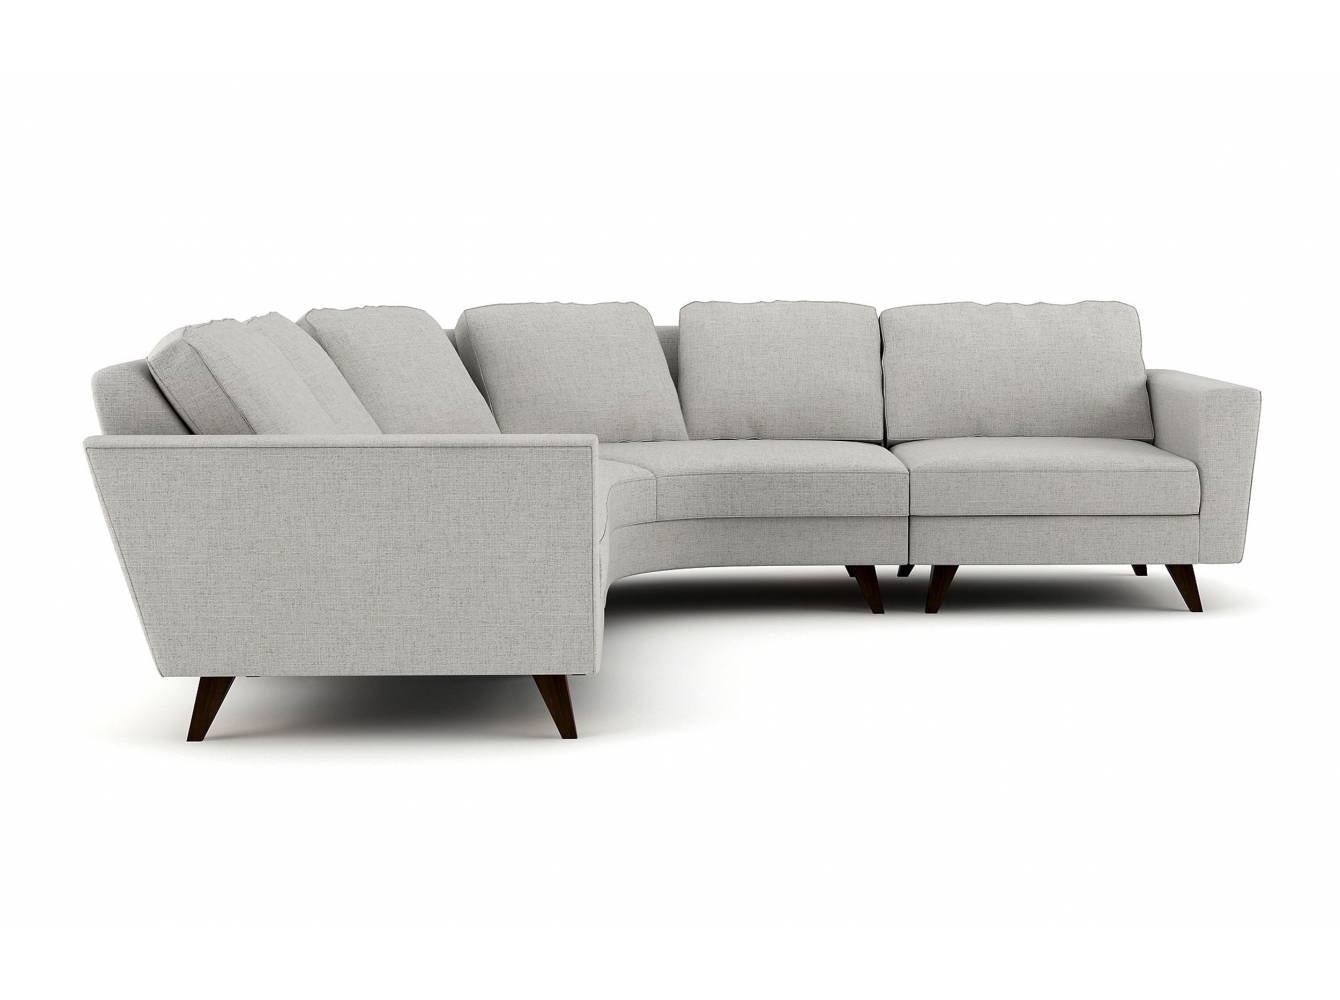 Pel Rounded Corner Sectional - Stem with Rounded Corner Sectional Sofas (Image 3 of 10)